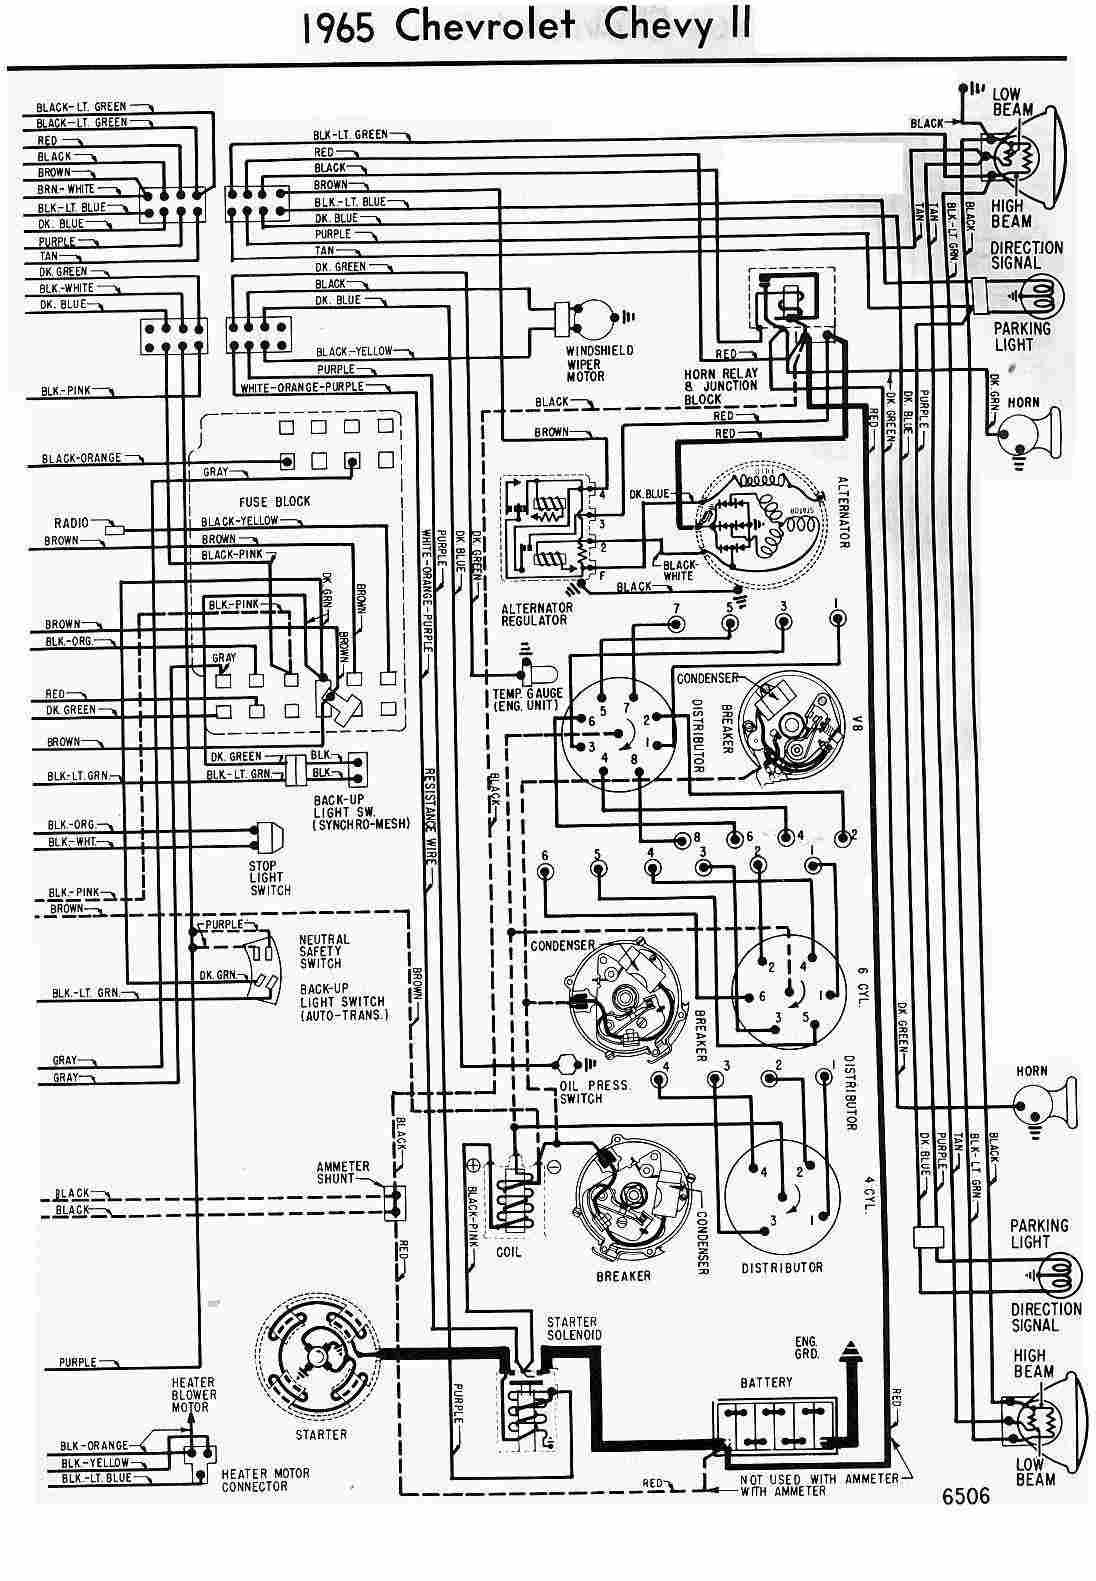 1964 chevy malibu heater wiring diagram free download wiring diagram u2022 rh msblog co 1964 pontiac lemans wiring diagram 1964 pontiac lemans wiring diagram